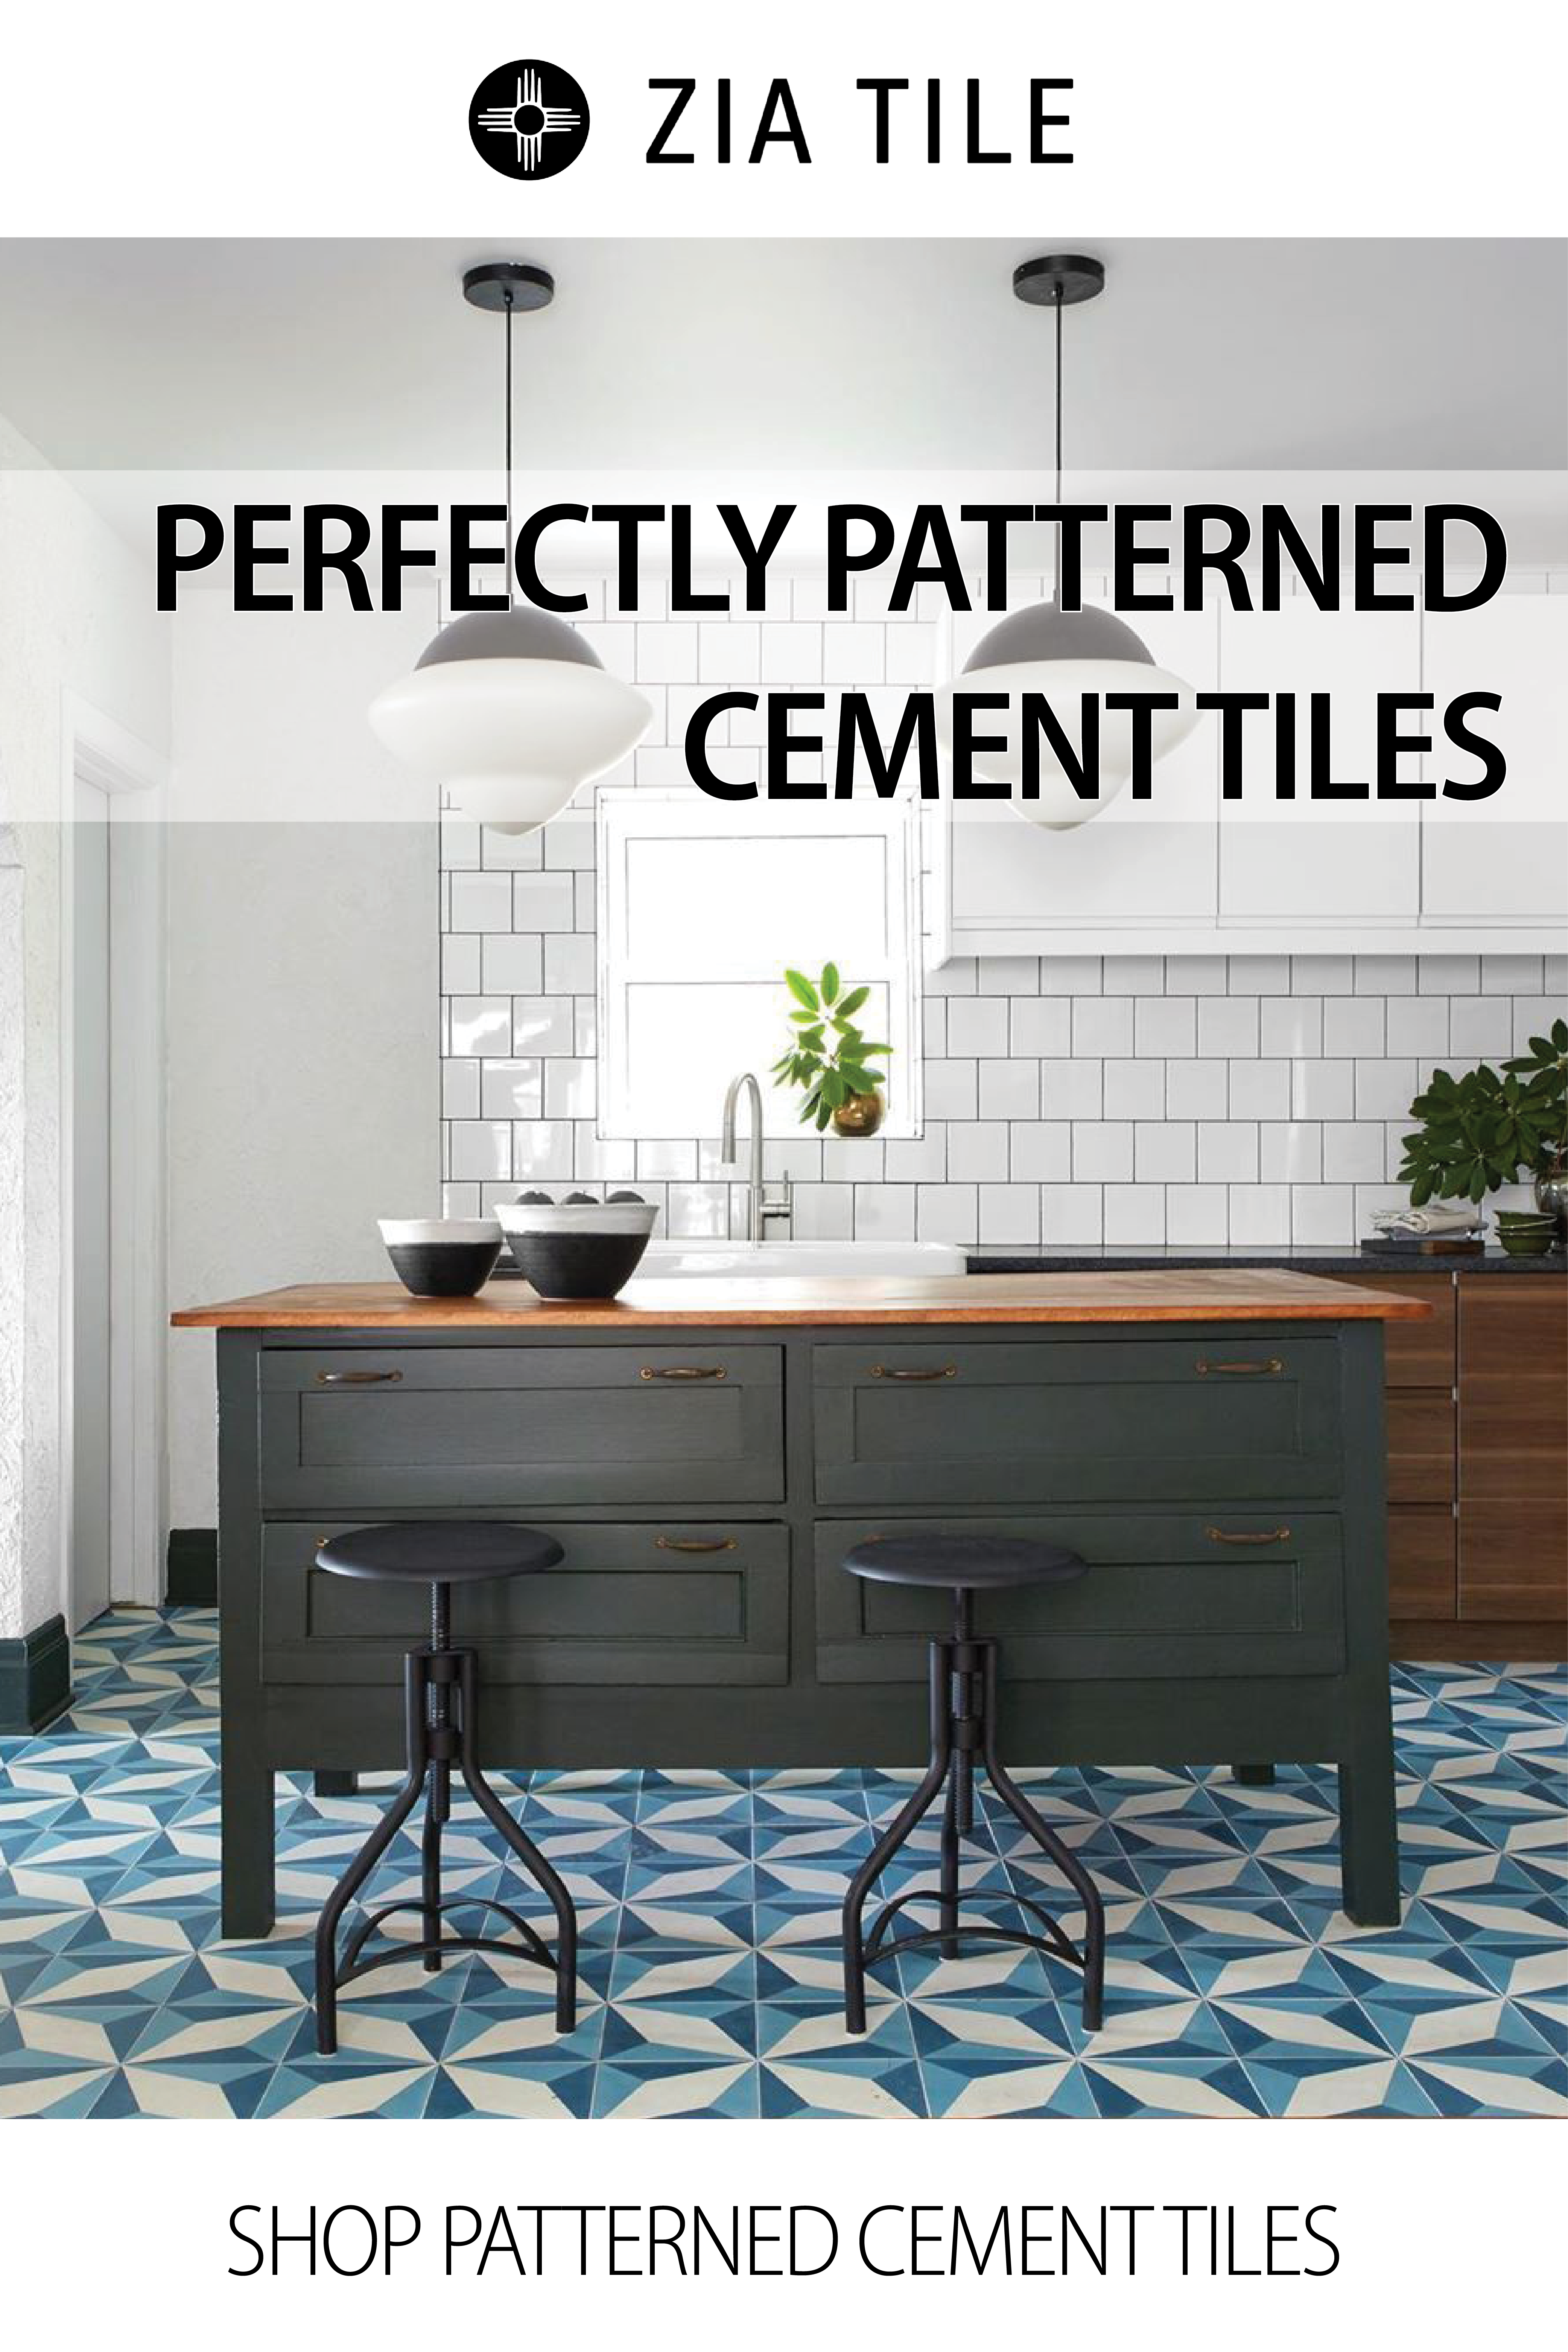 In Stock Cement Tile And Moroccan Zellige Zia Tile Los Angeles In